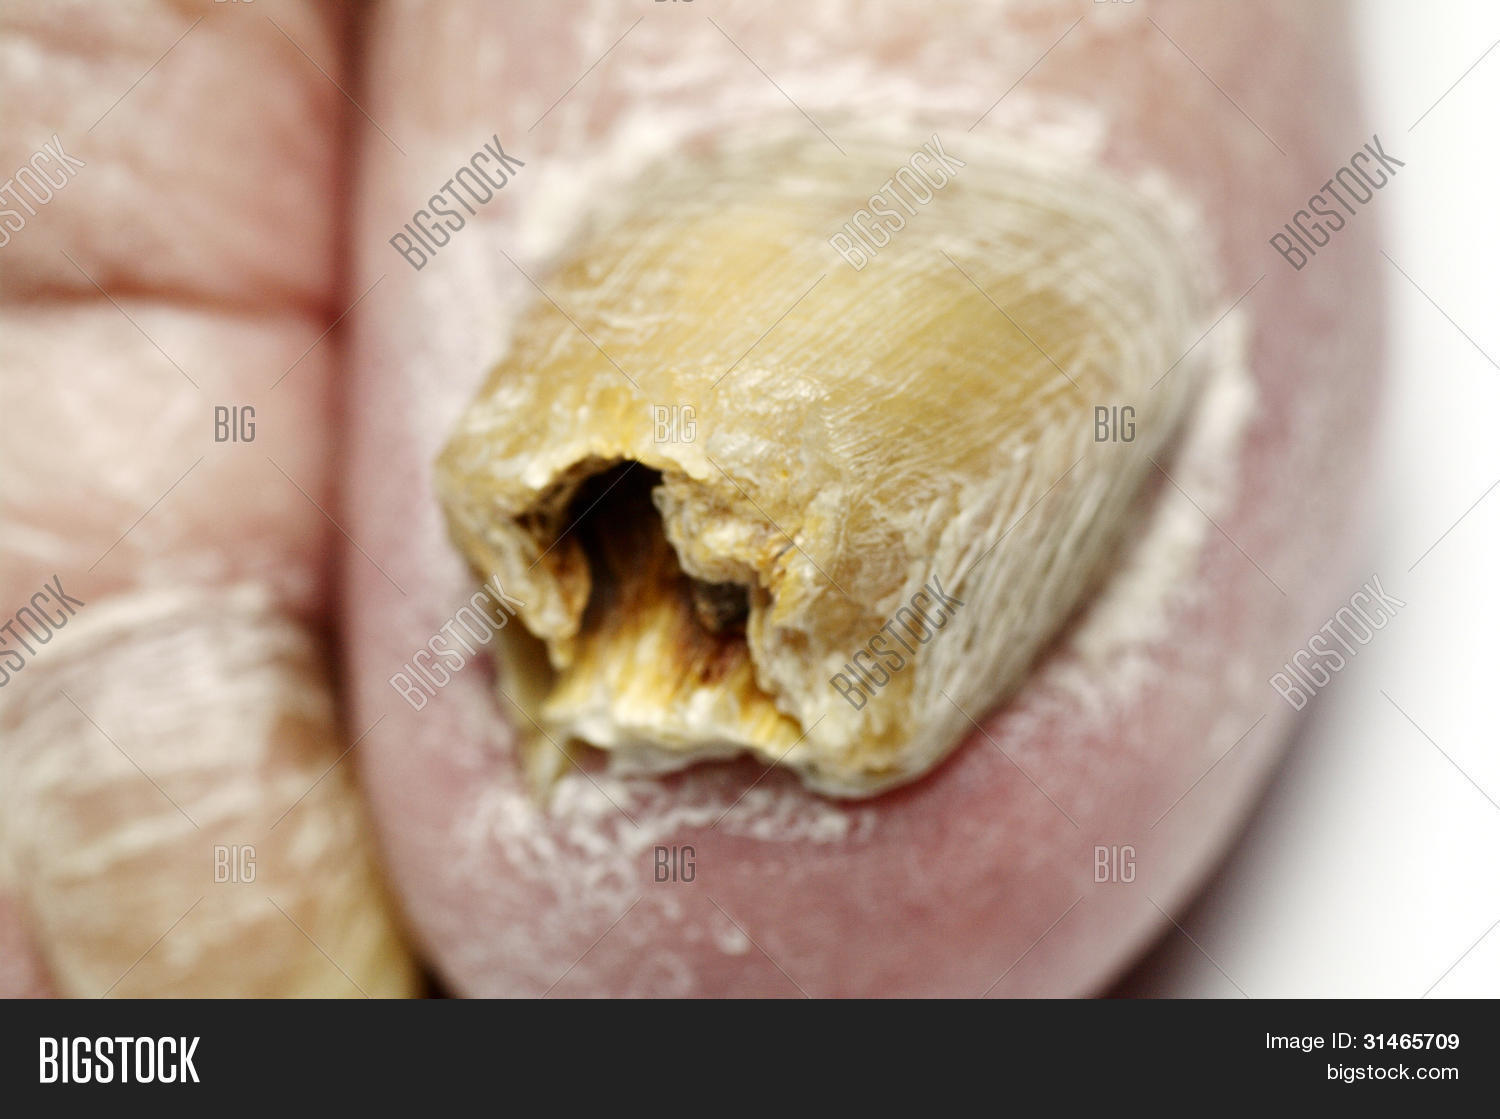 how to clear fungal nail infections